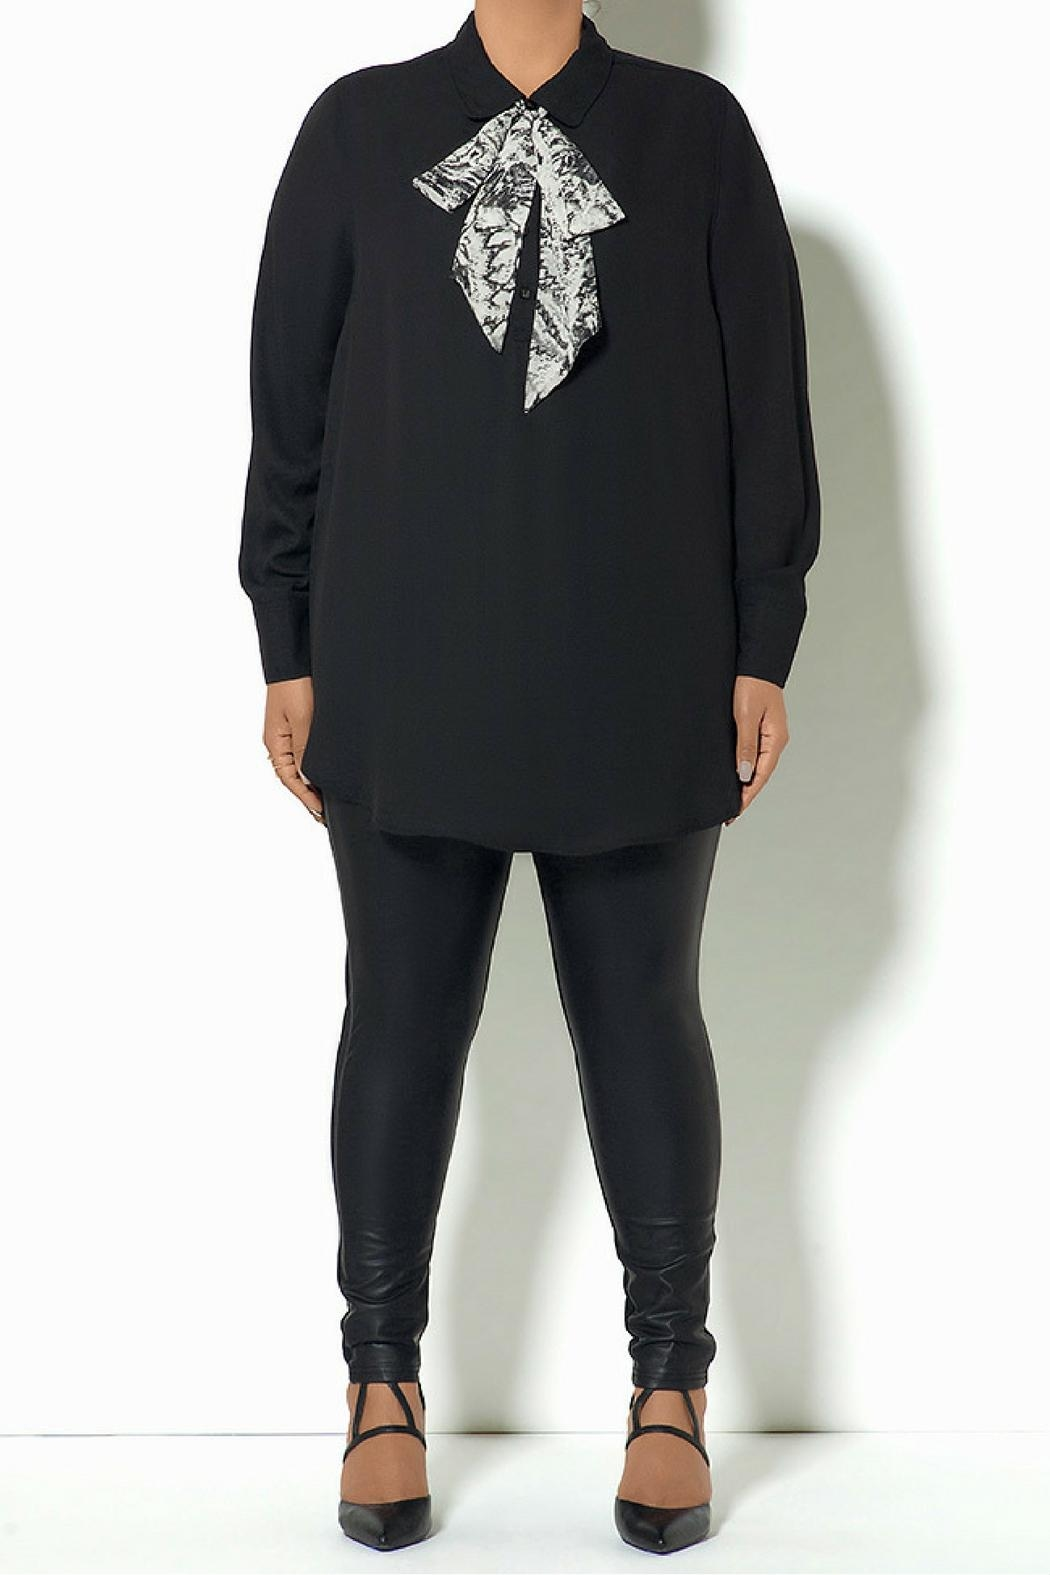 Full Figured Fashionista Removable Tie Top - Main Image